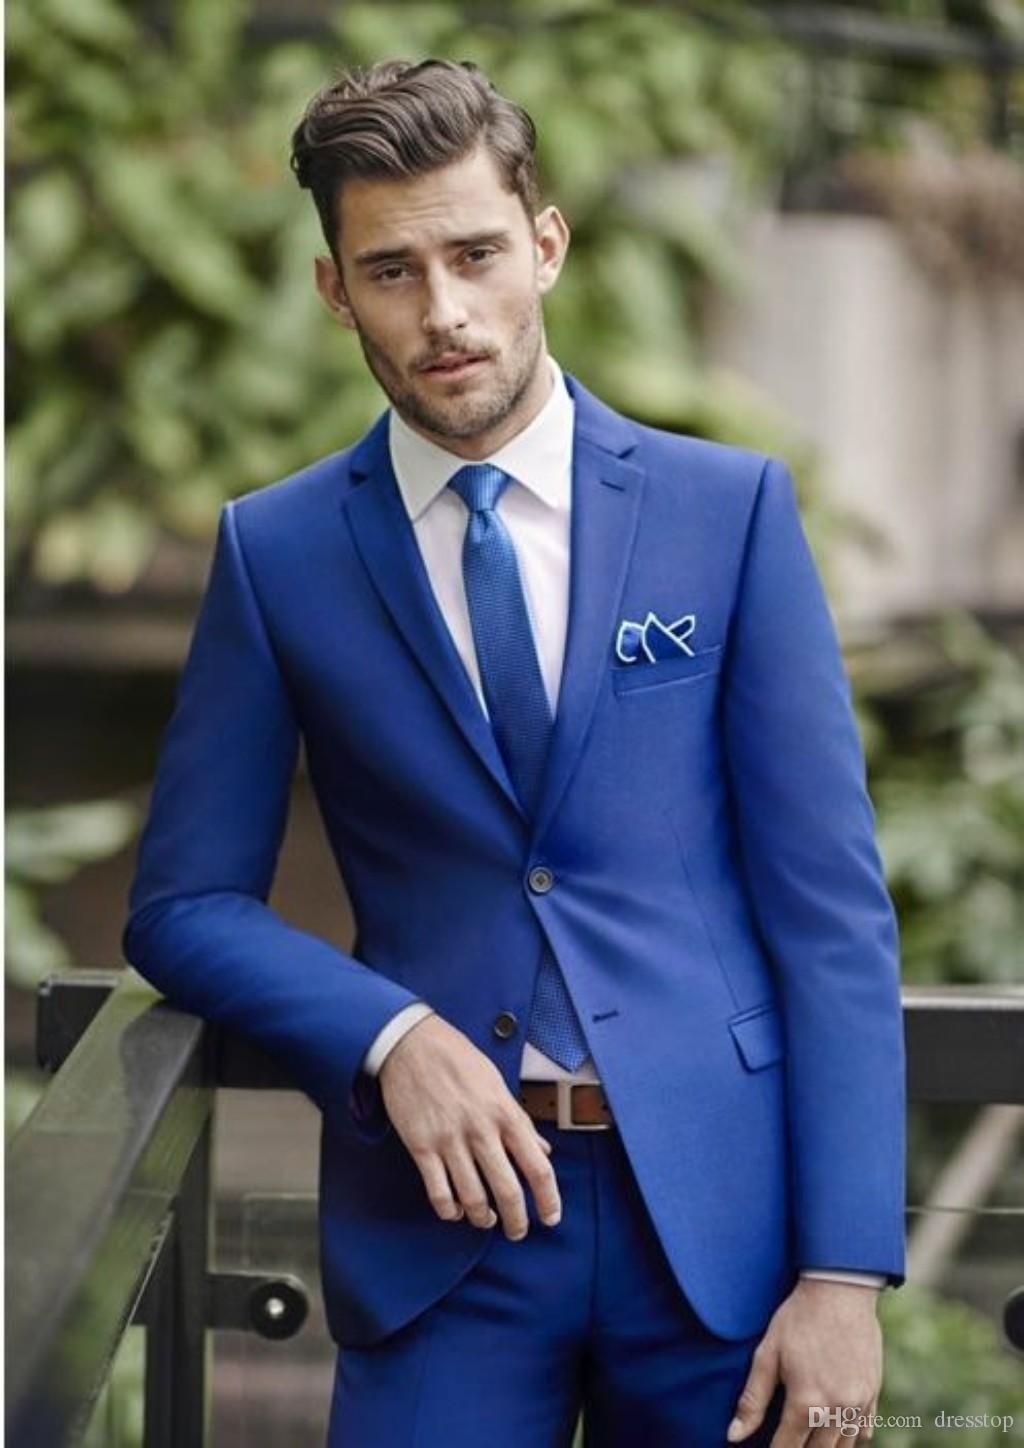 00e0b806574d Classy Blue Wedding Mens Suits Slim Fit Bridegroom Tuxedos For Men Three  Pieces Groomsmen Suit Cheap Formal Business Jackets With Vest Black And  White ...